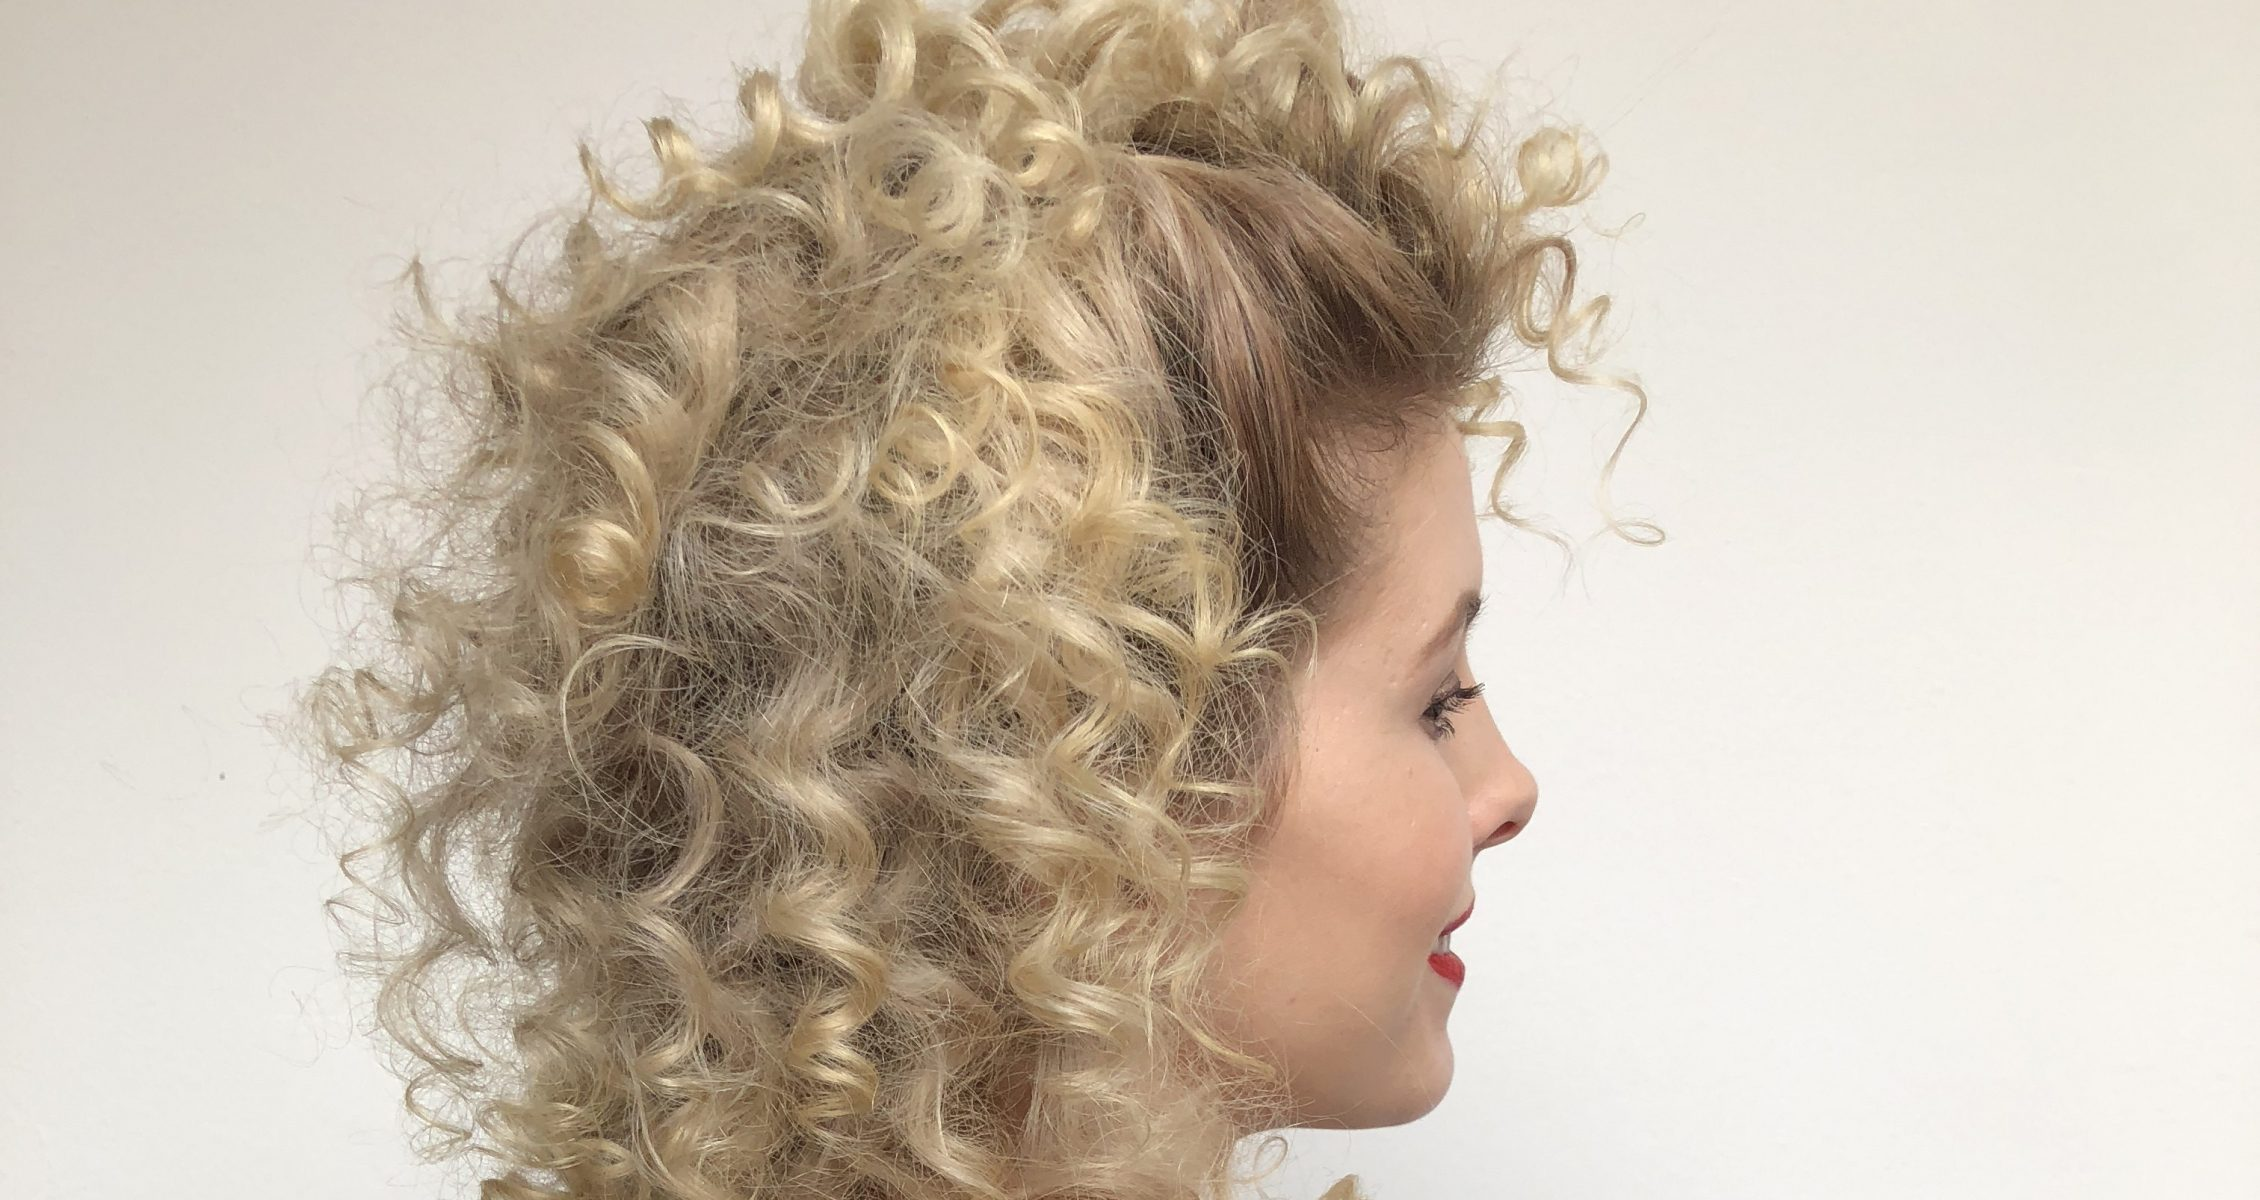 1084849d4db1ae Sandy from grease hair tutorial on a blond woman wearing an off the  shoulder black top